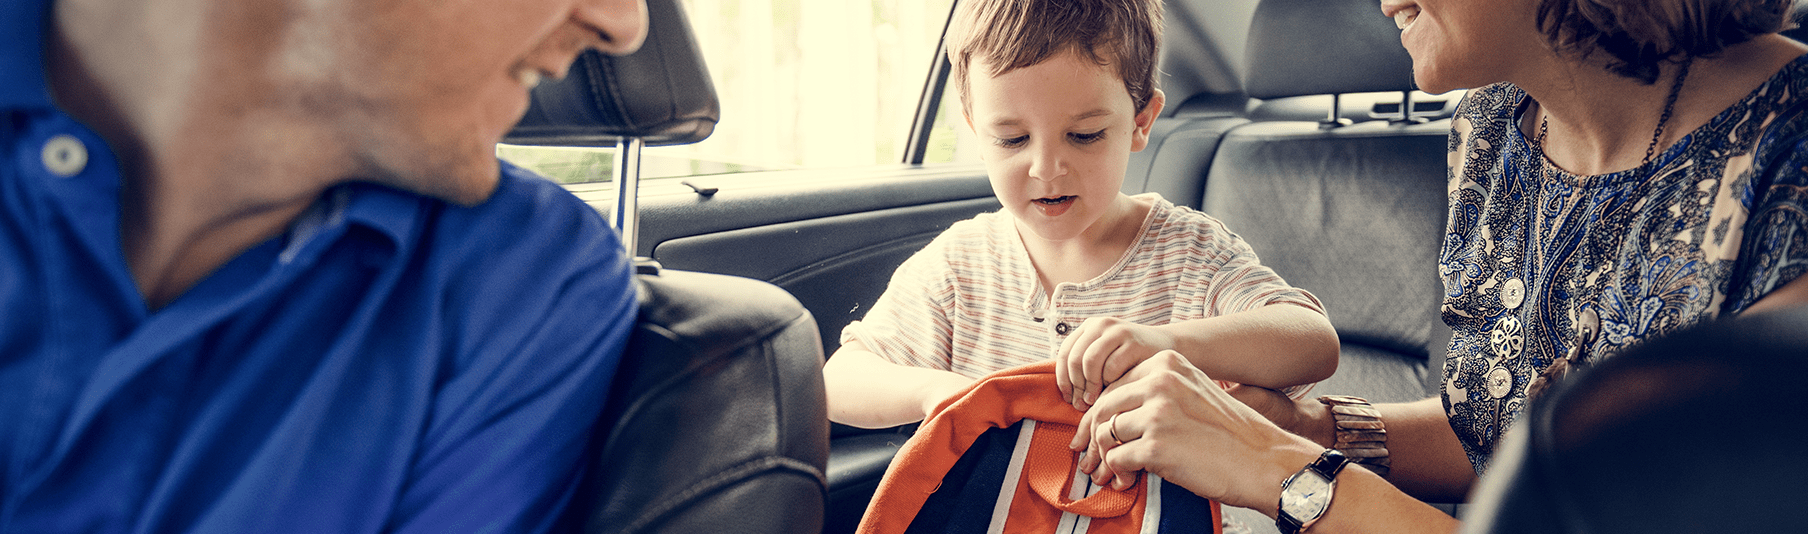 Motor Insurance: A family within their car, the parents helping their son with his backpack